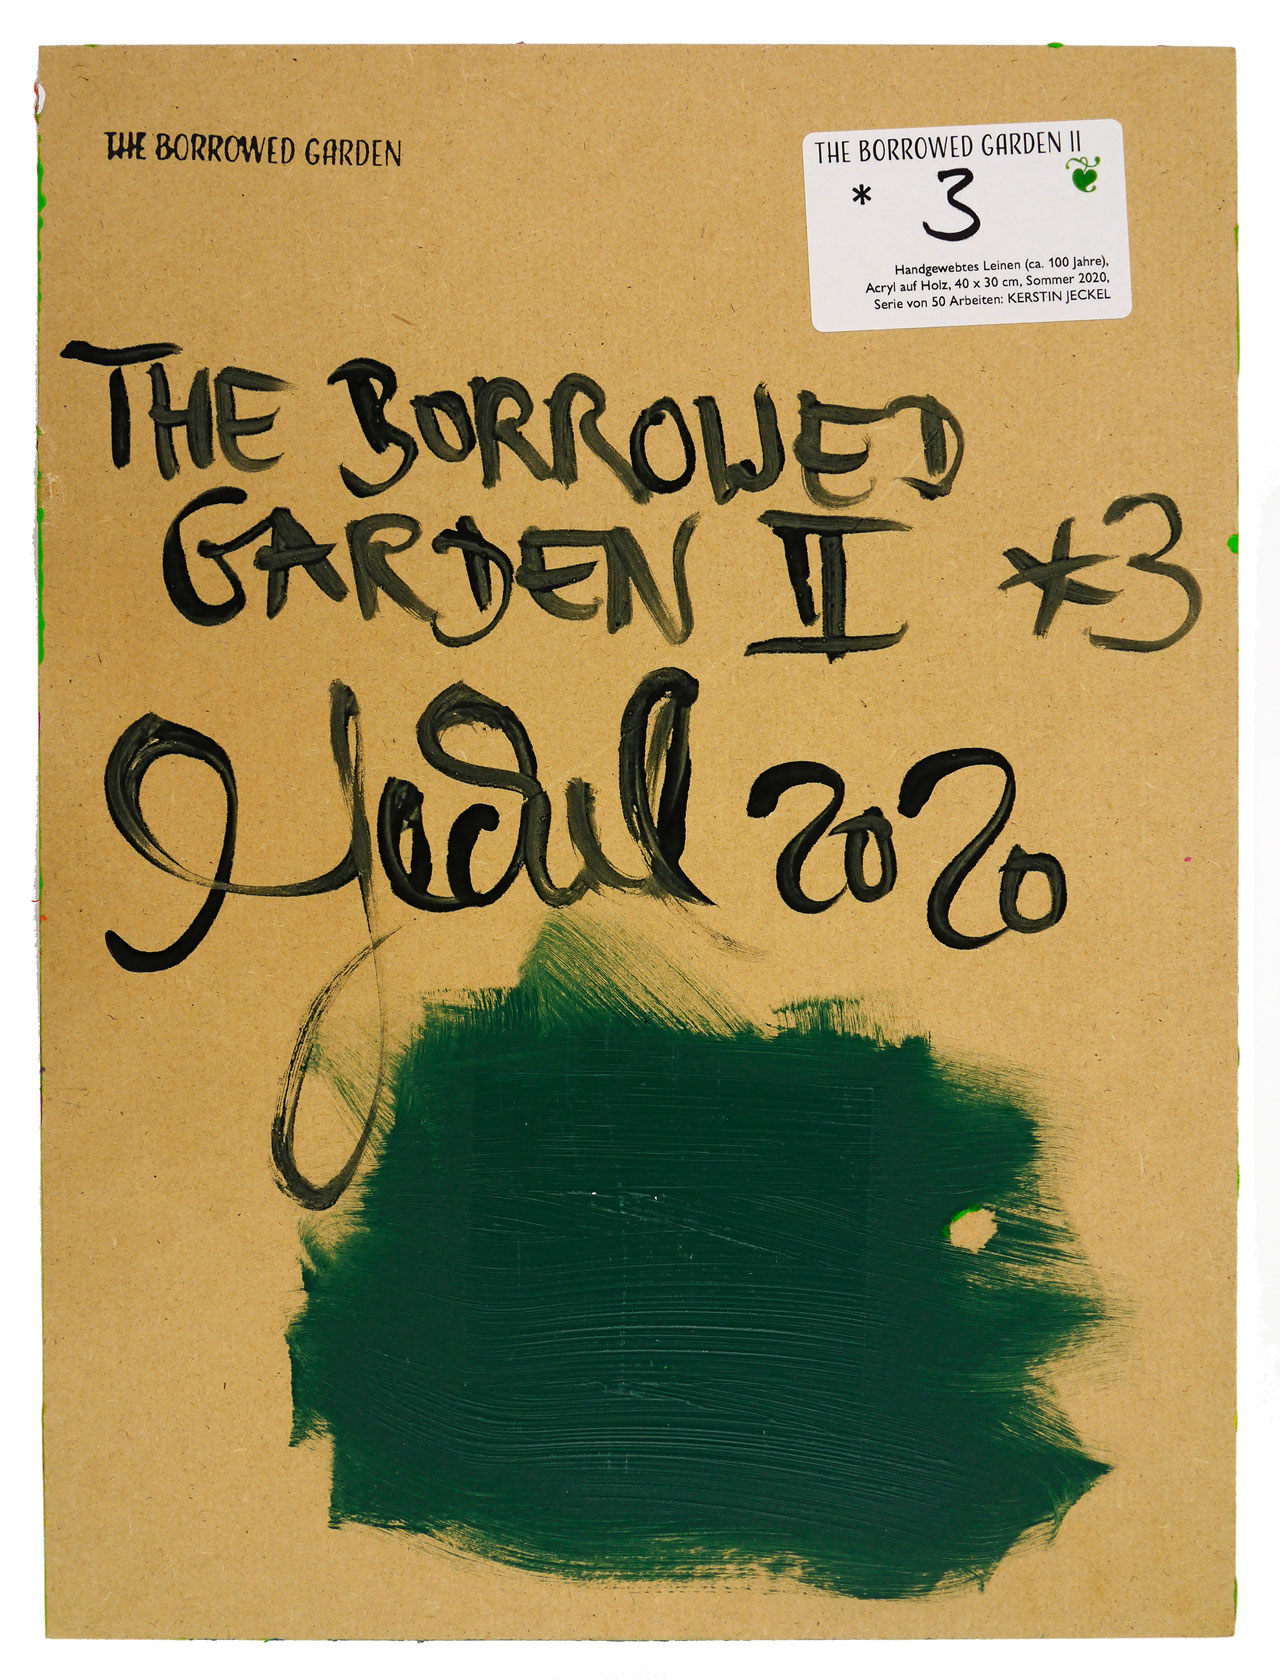 THE BORROWED GARDEN II * 3, back | 2020 © Kerstin Jeckel